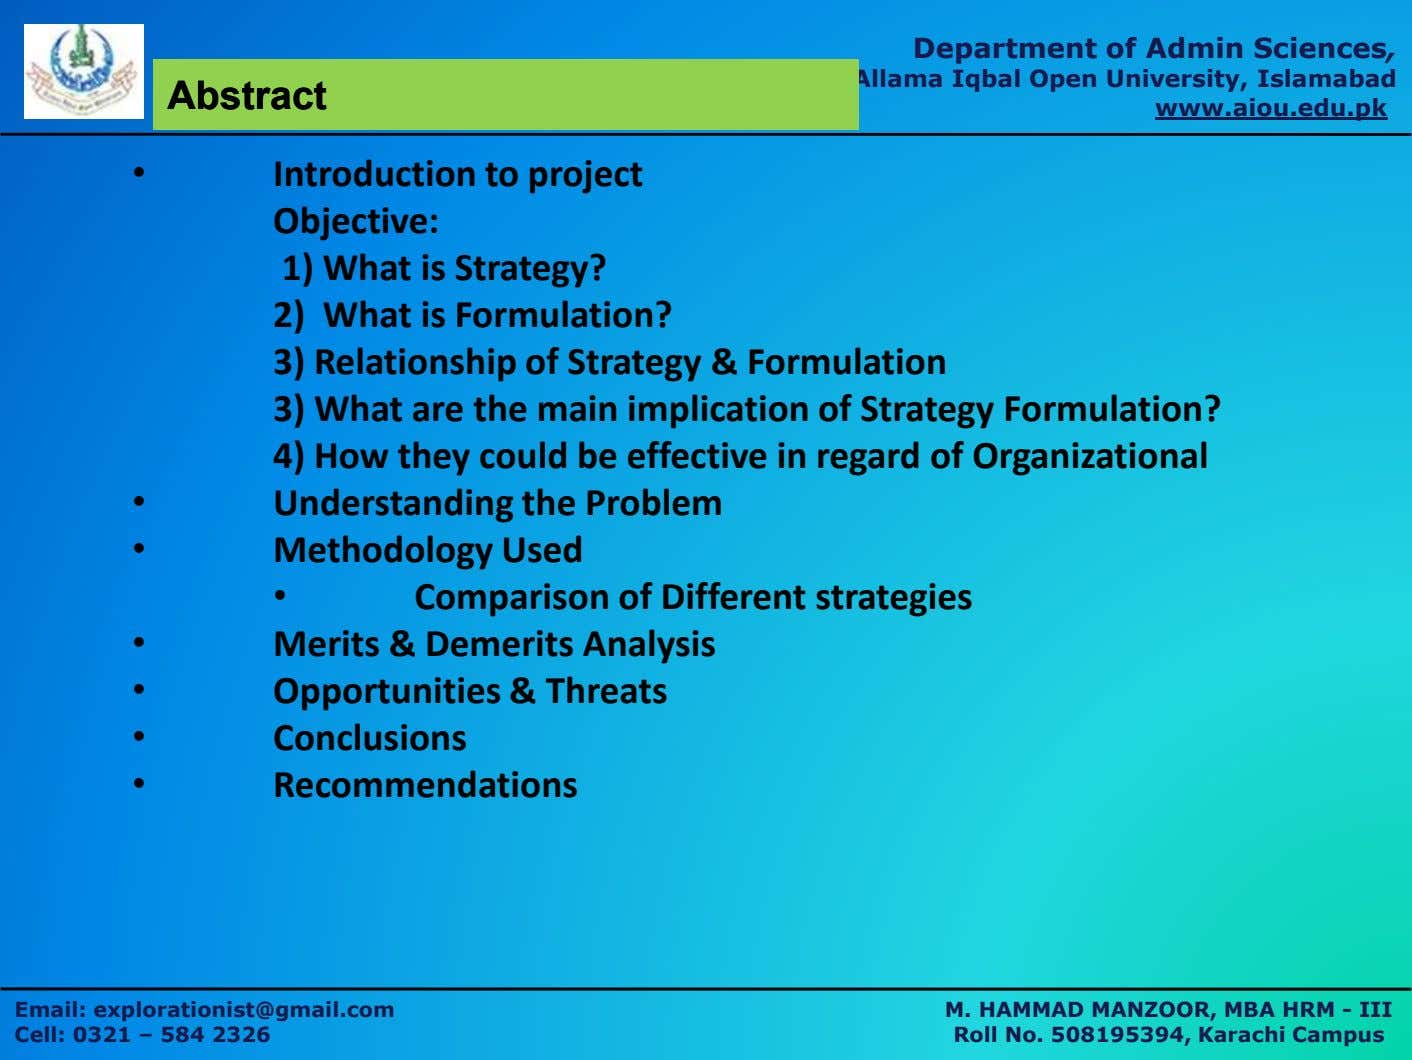 Department of Admin Sciences, AbstractAbstract Allama Iqbal Open University, Islamabad www.aiou.edu.pk •